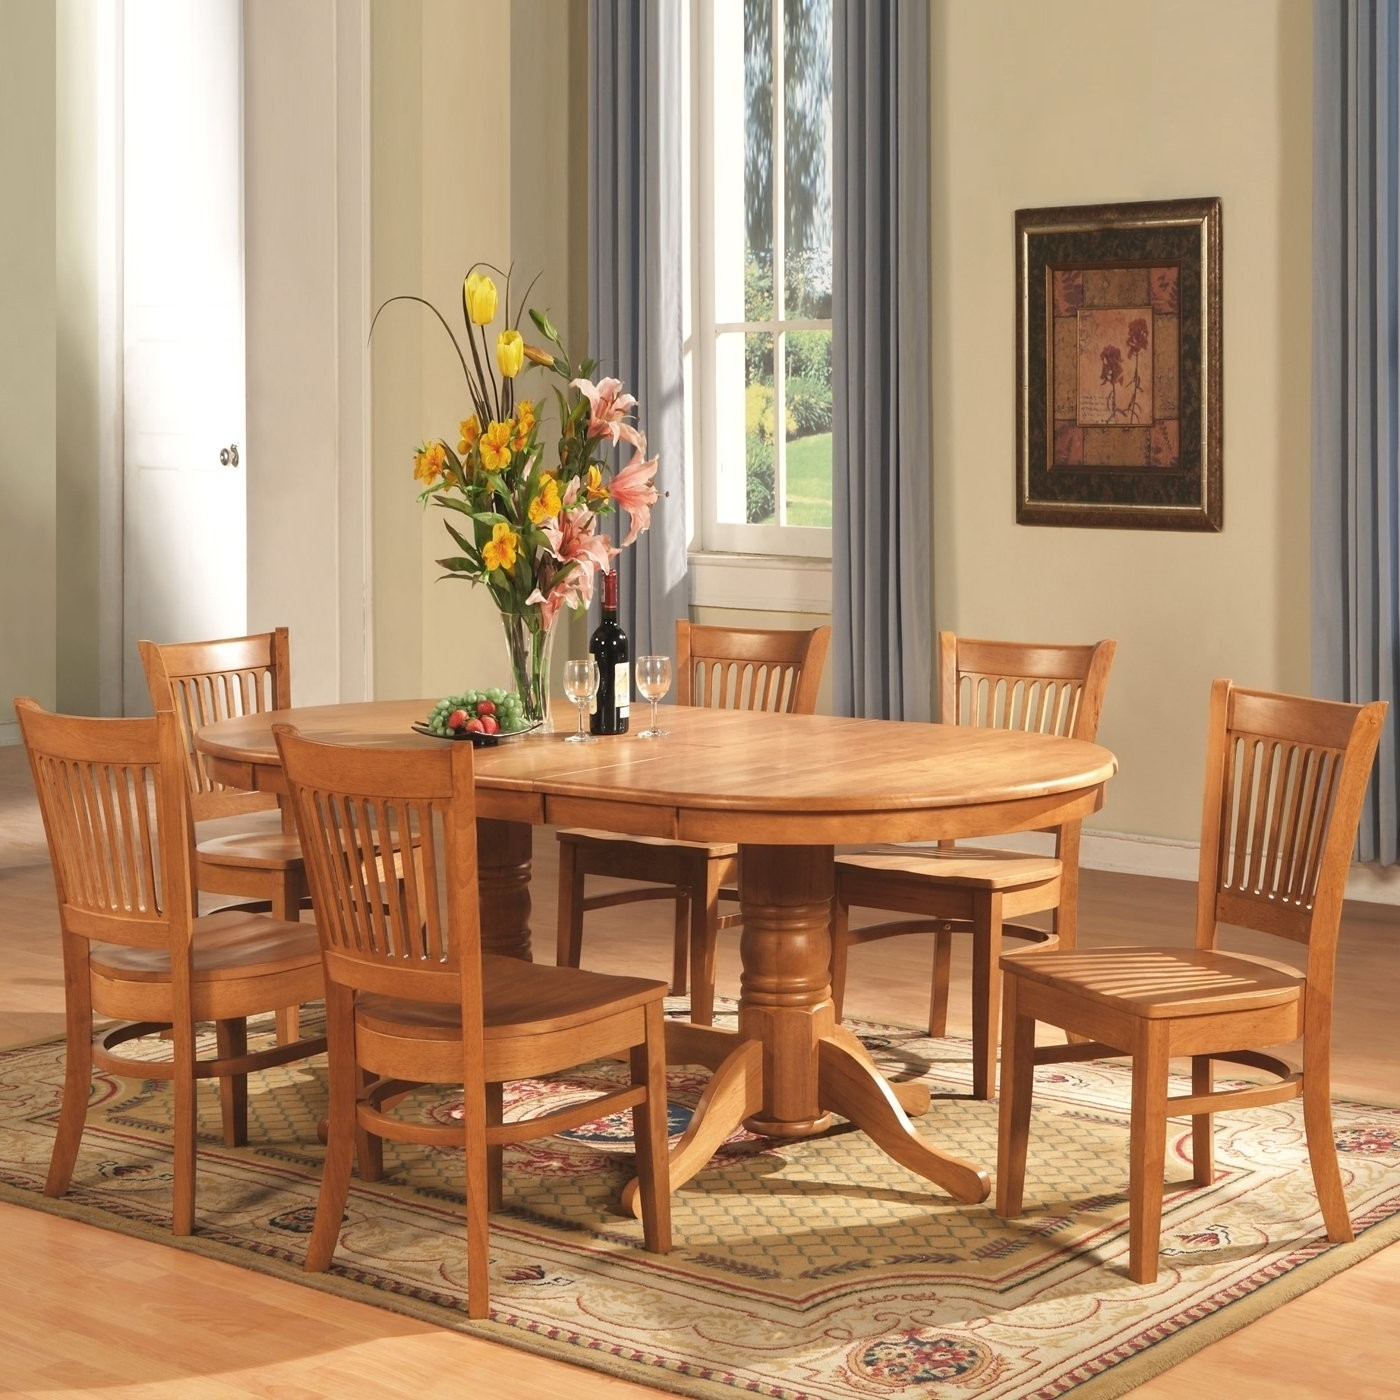 Trendy Solid Oak Dining Room Table And 8 Chairs Best Of Inspirational Oak Intended For Oak Dining Tables With 6 Chairs (View 16 of 25)